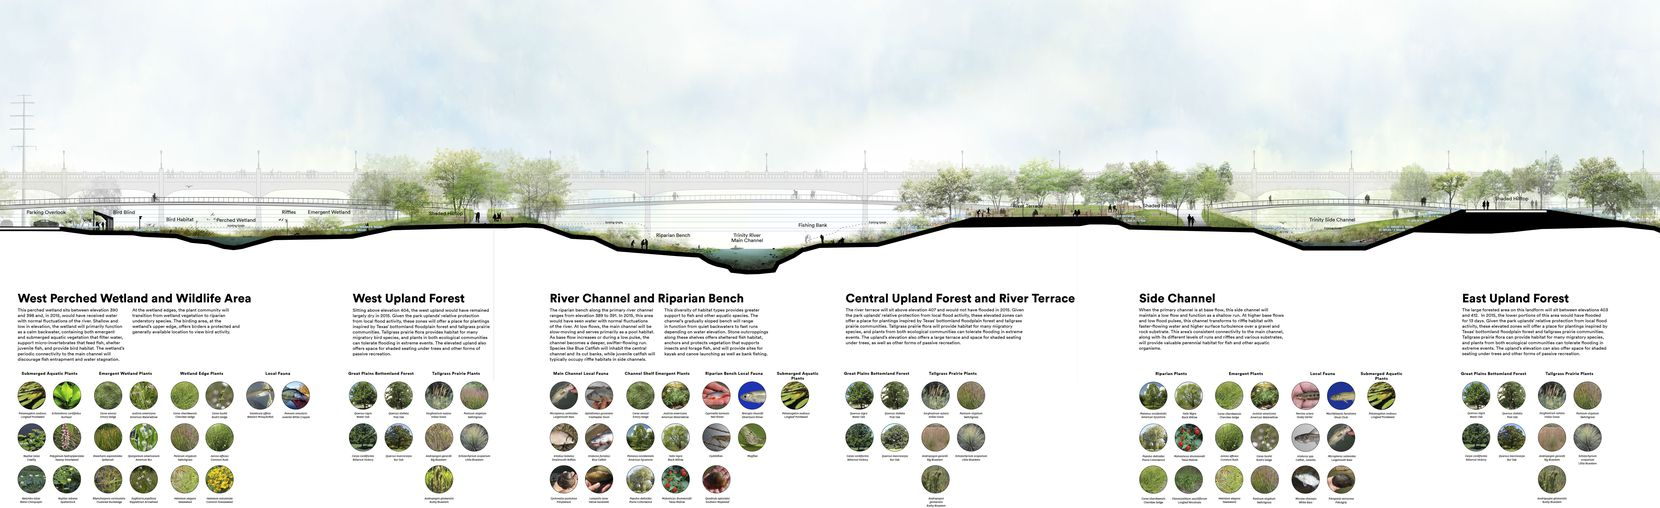 Plans for a park inside the Trinity River levees as shown Tuesday, Dec. 4, 2018. The Trinity Park Conservancy (originally founded as The Trinity Trust Foundation) is developing the plan within the Trinity River corridor which includes Harold Simmons Park which would be between the Ronald Kirk Bridge to the north and the Margaret McDermott Bridge to the south.